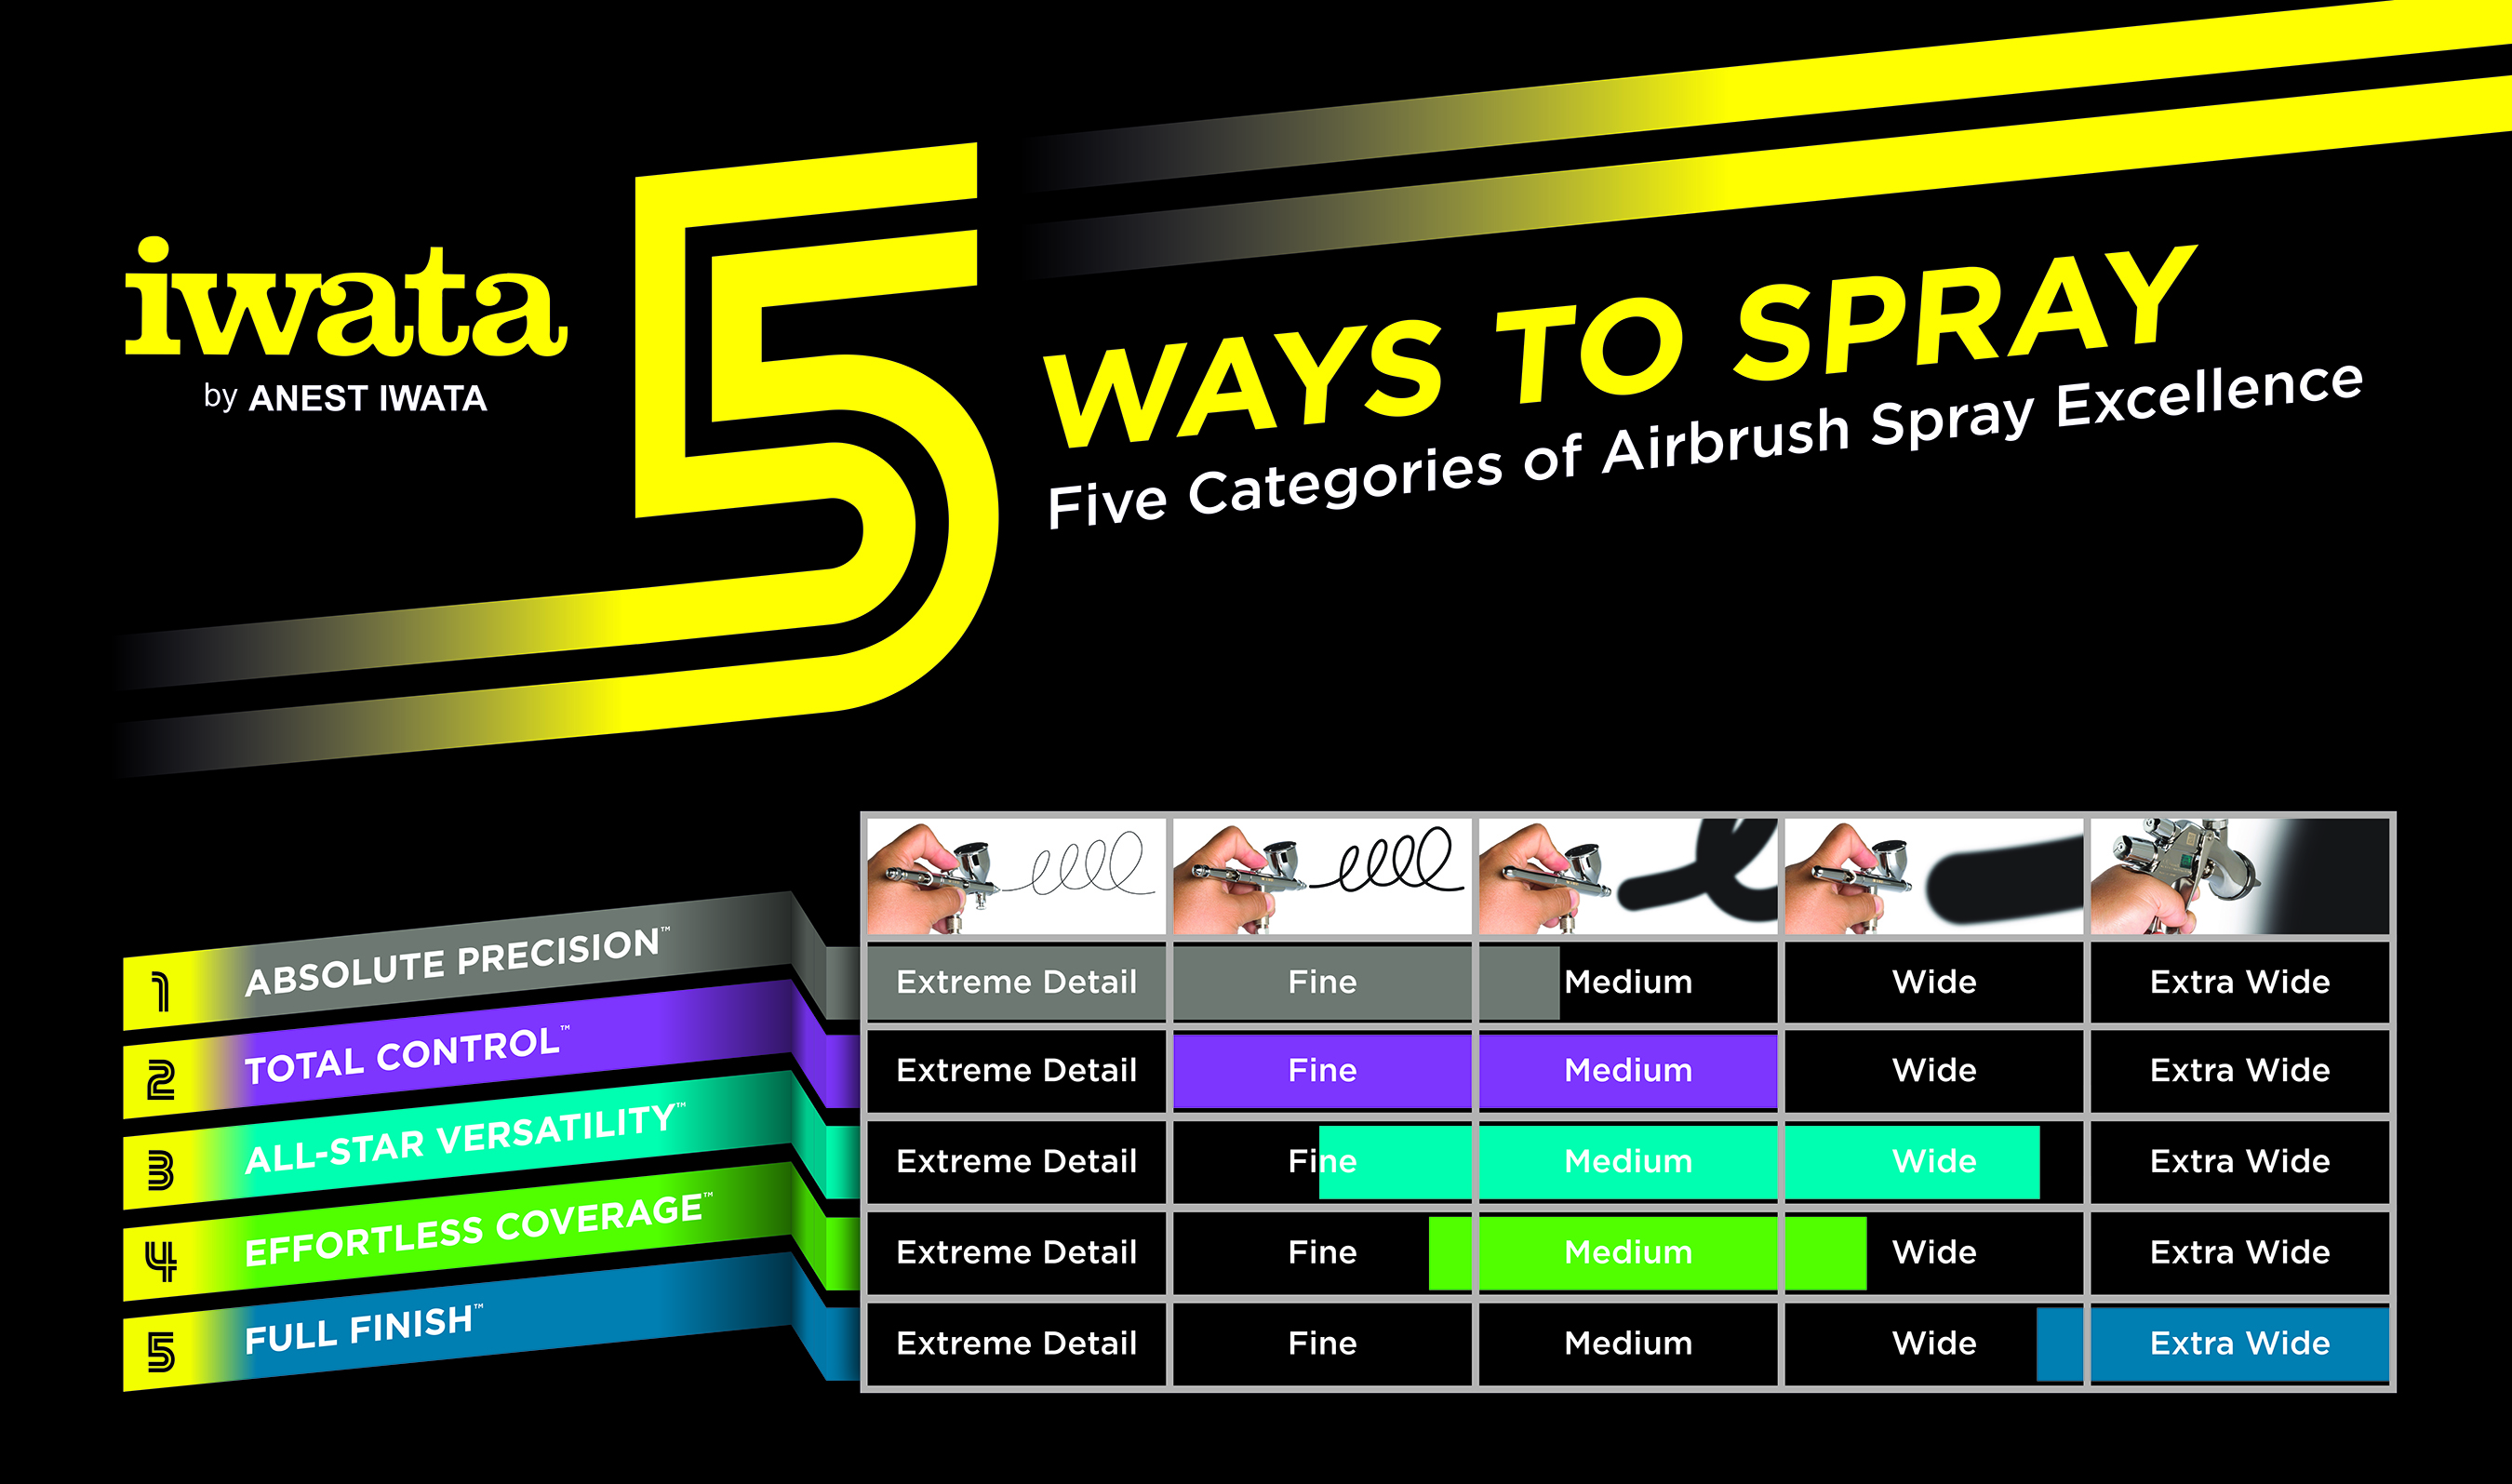 Iwata's new airbrush guide: 5 ways to spray